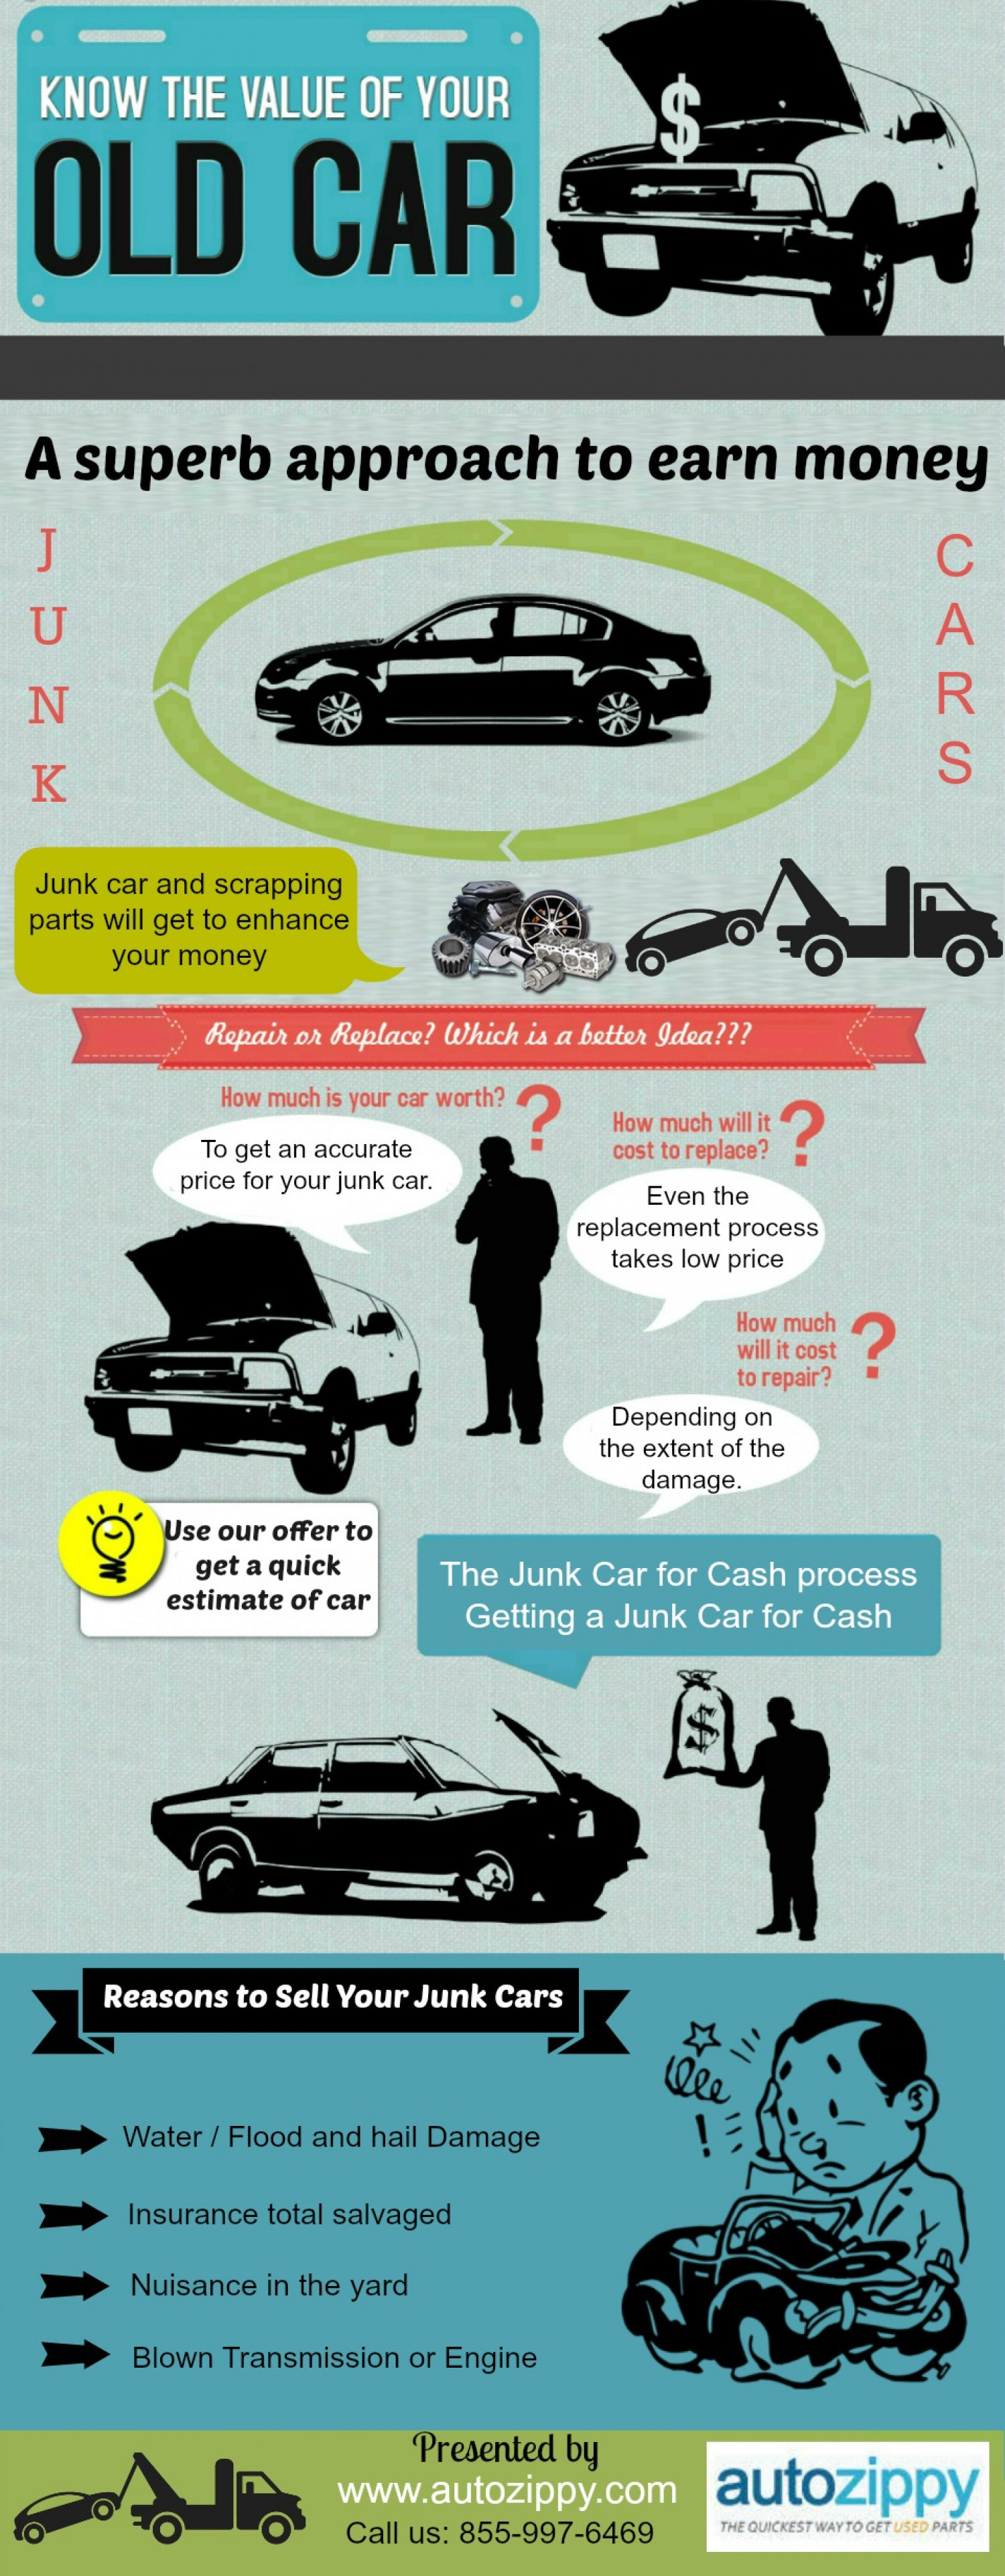 Sell Your Junk Car and Make Money | Visual.ly